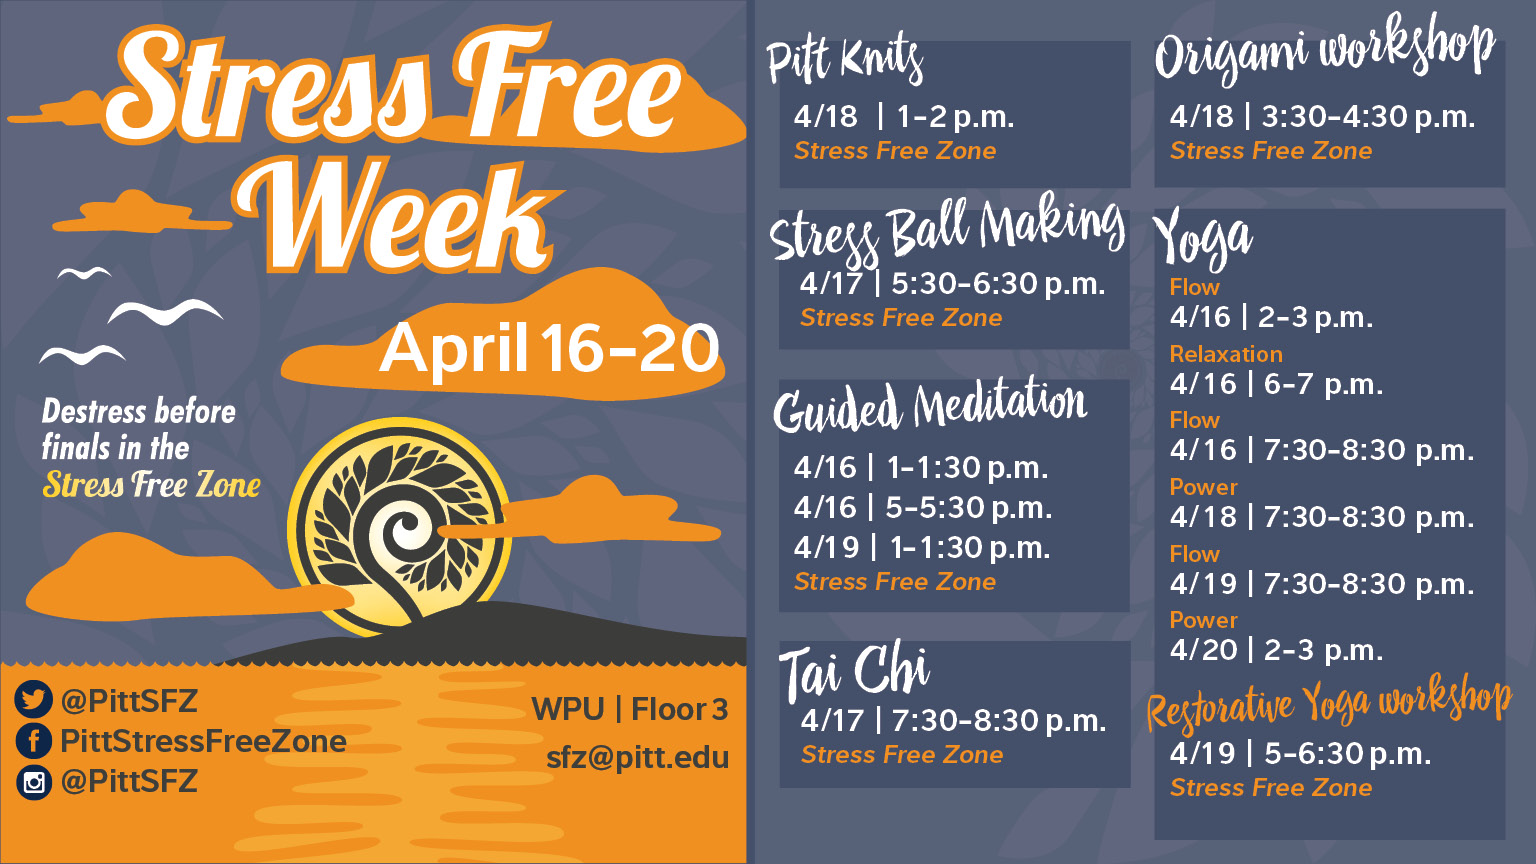 FinalStressFreeWeek_April 20